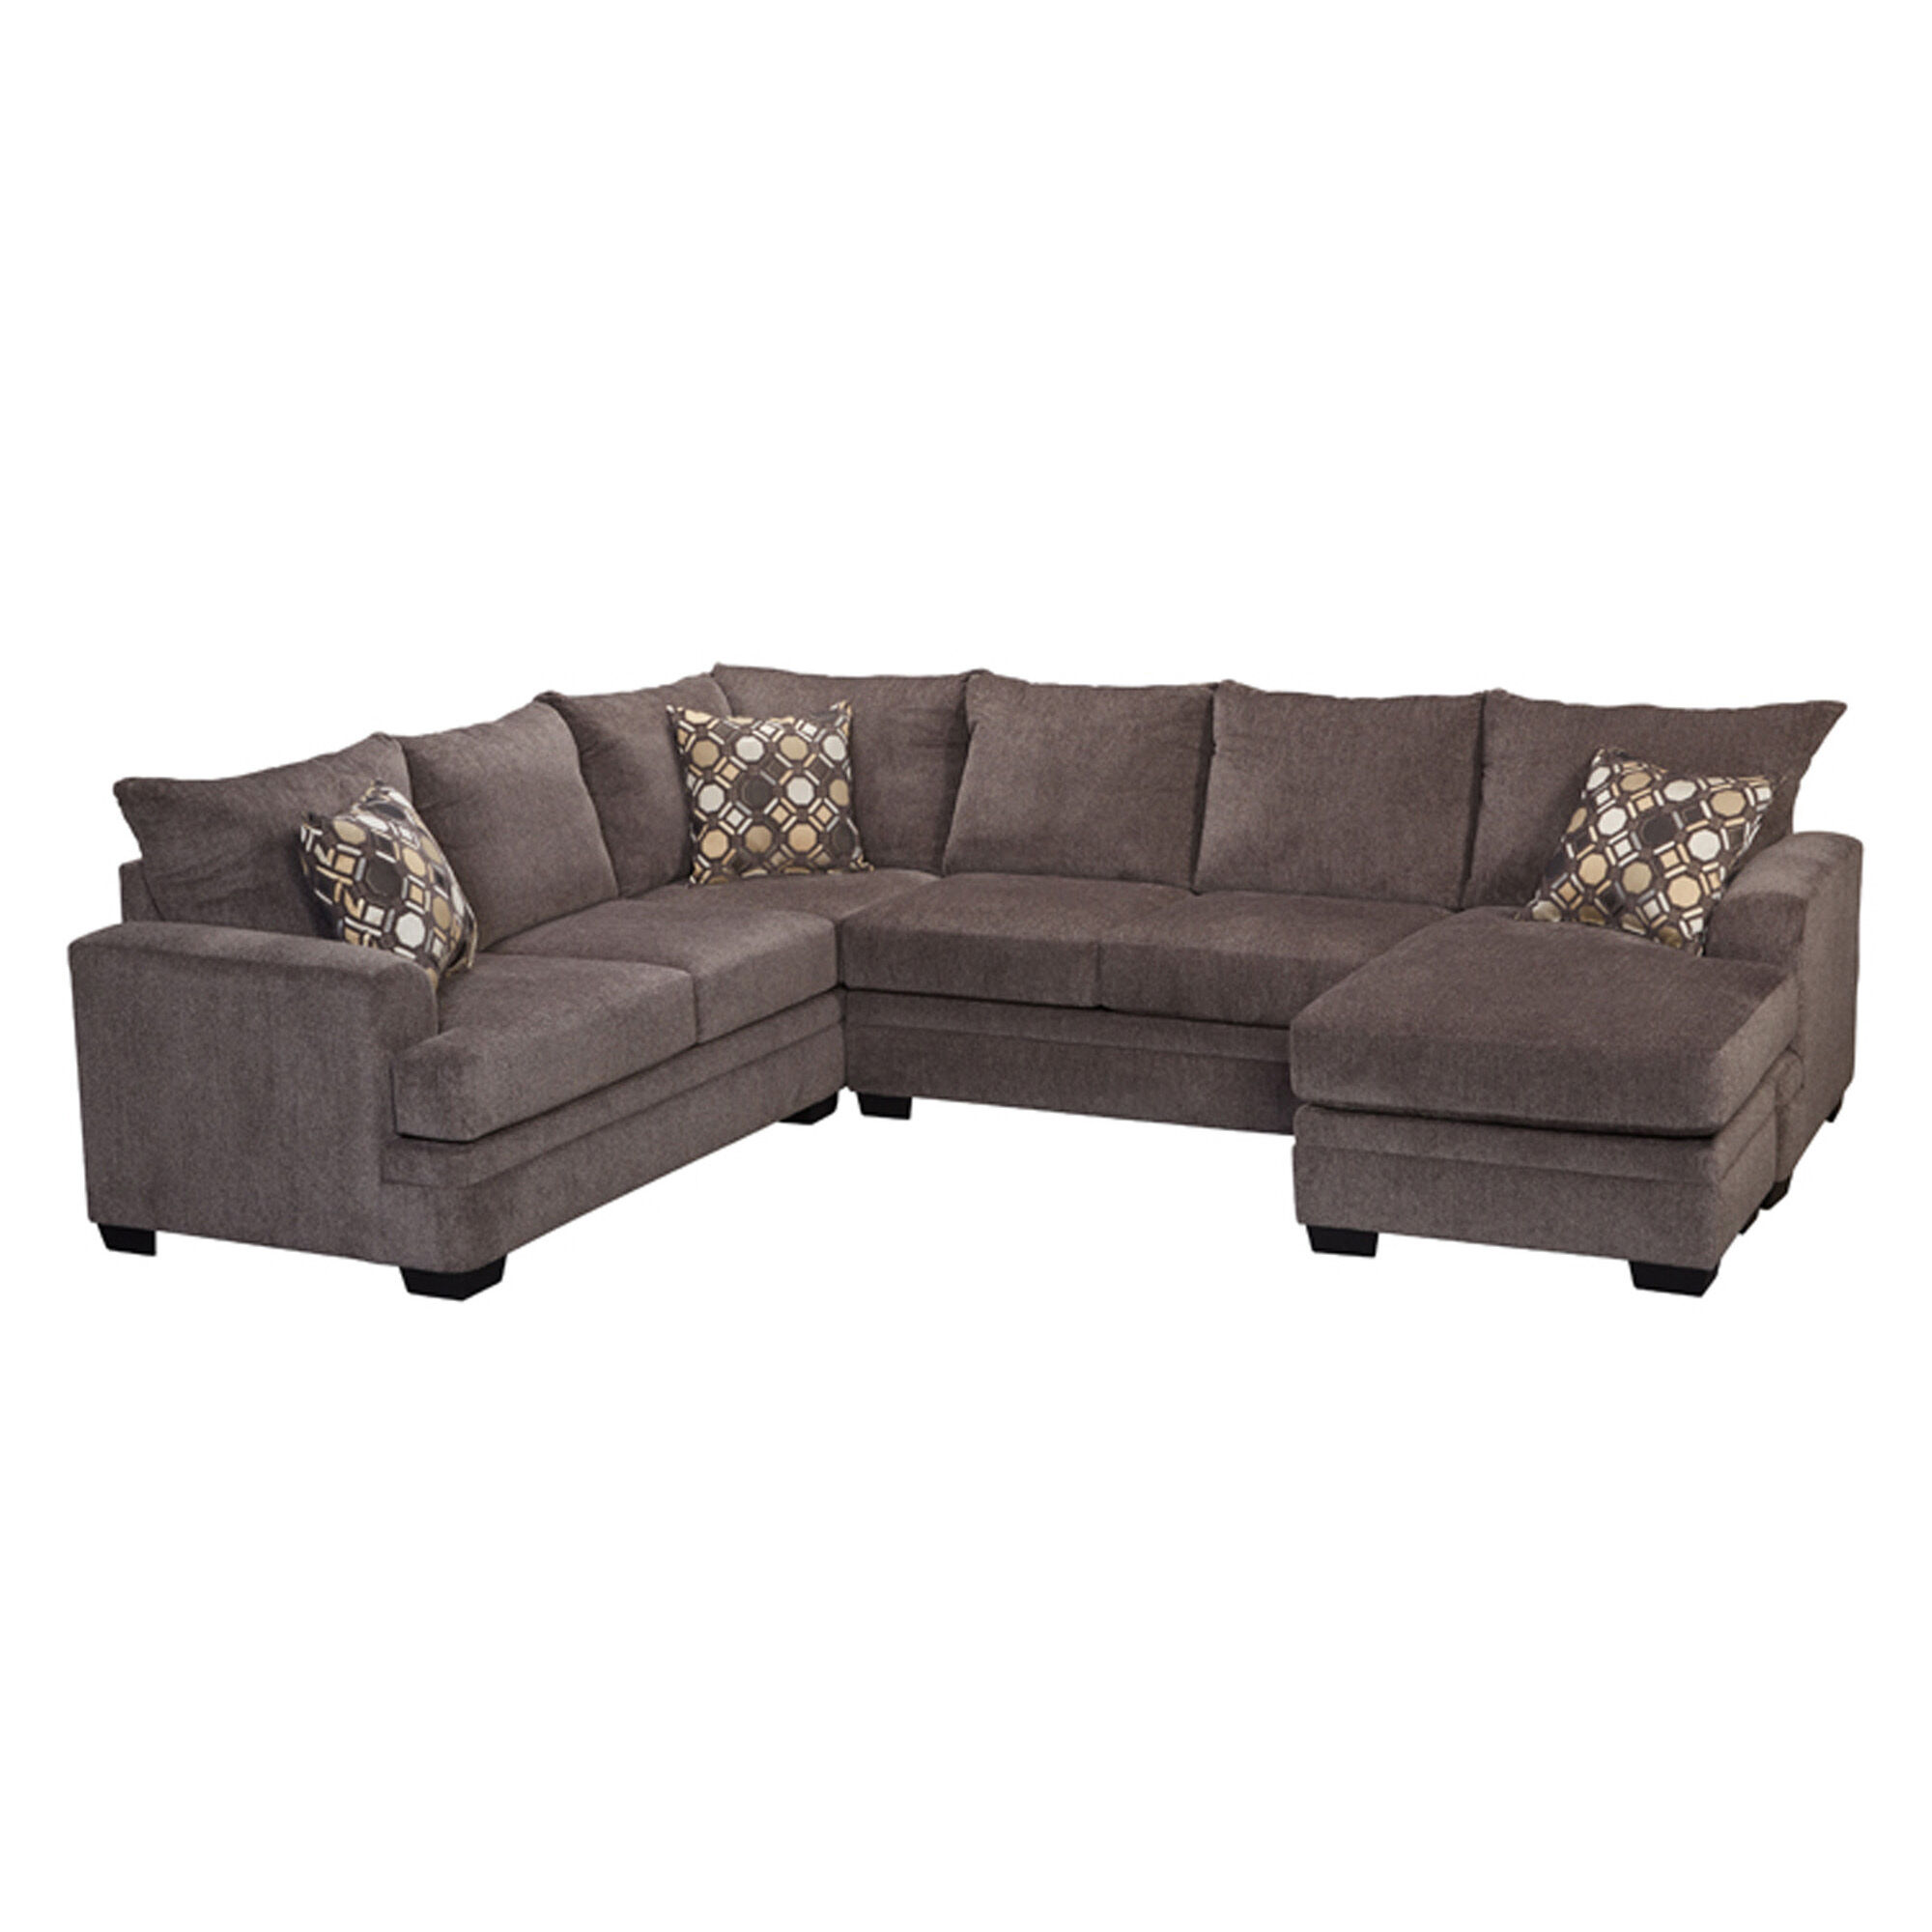 2 Piece Kimberly Living Room Collection Sectional